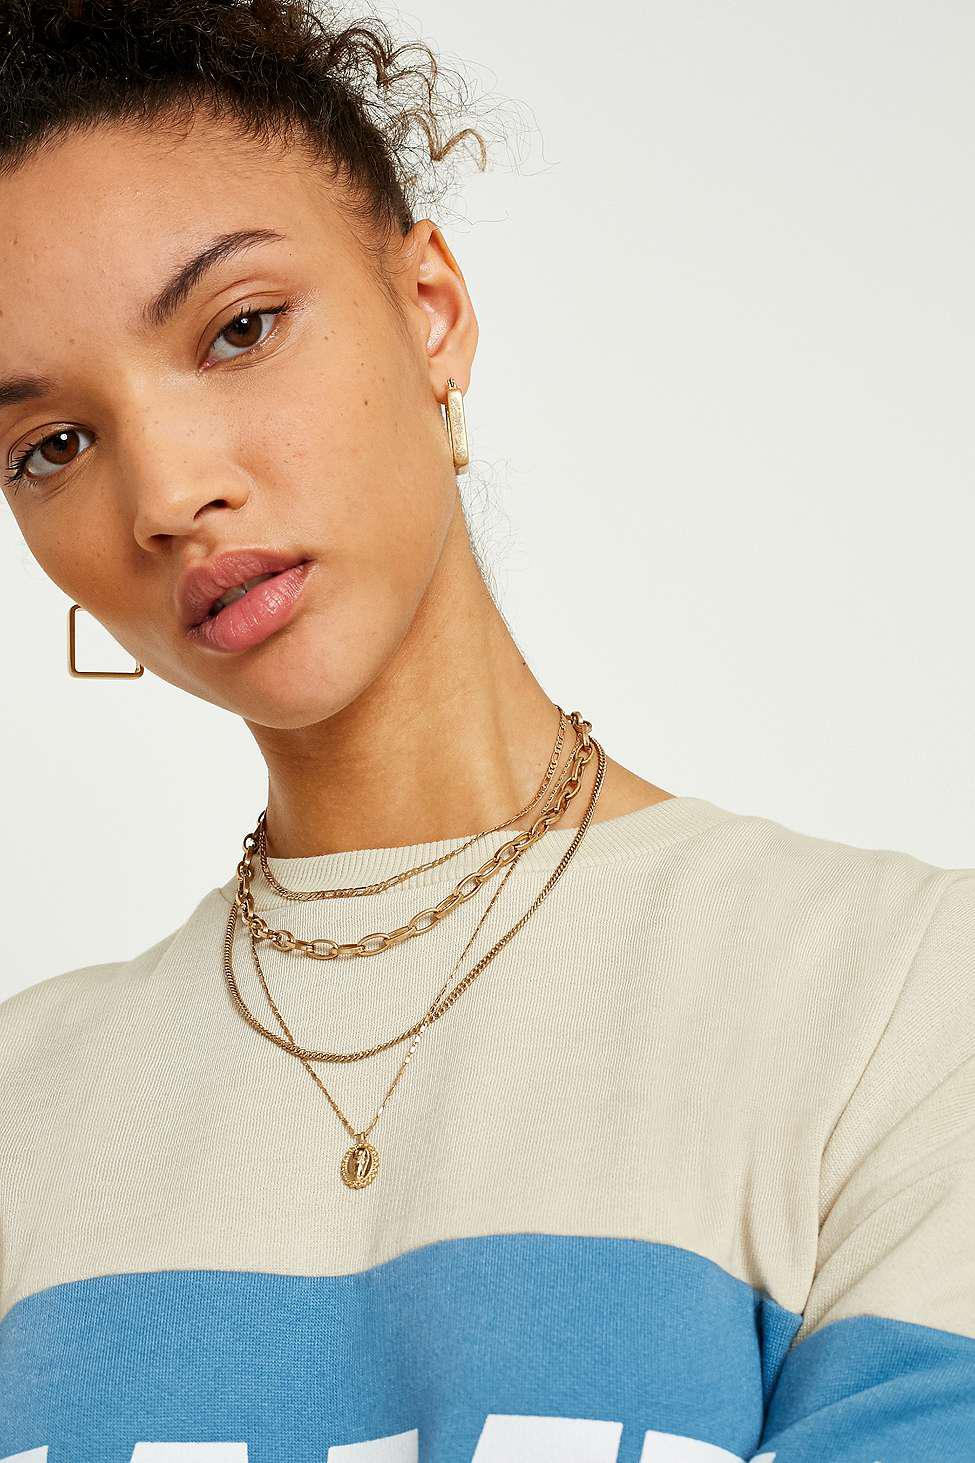 Urban Outfitters Link Chain And Charm Layering Necklace 2-pack in Gold (Metallic)